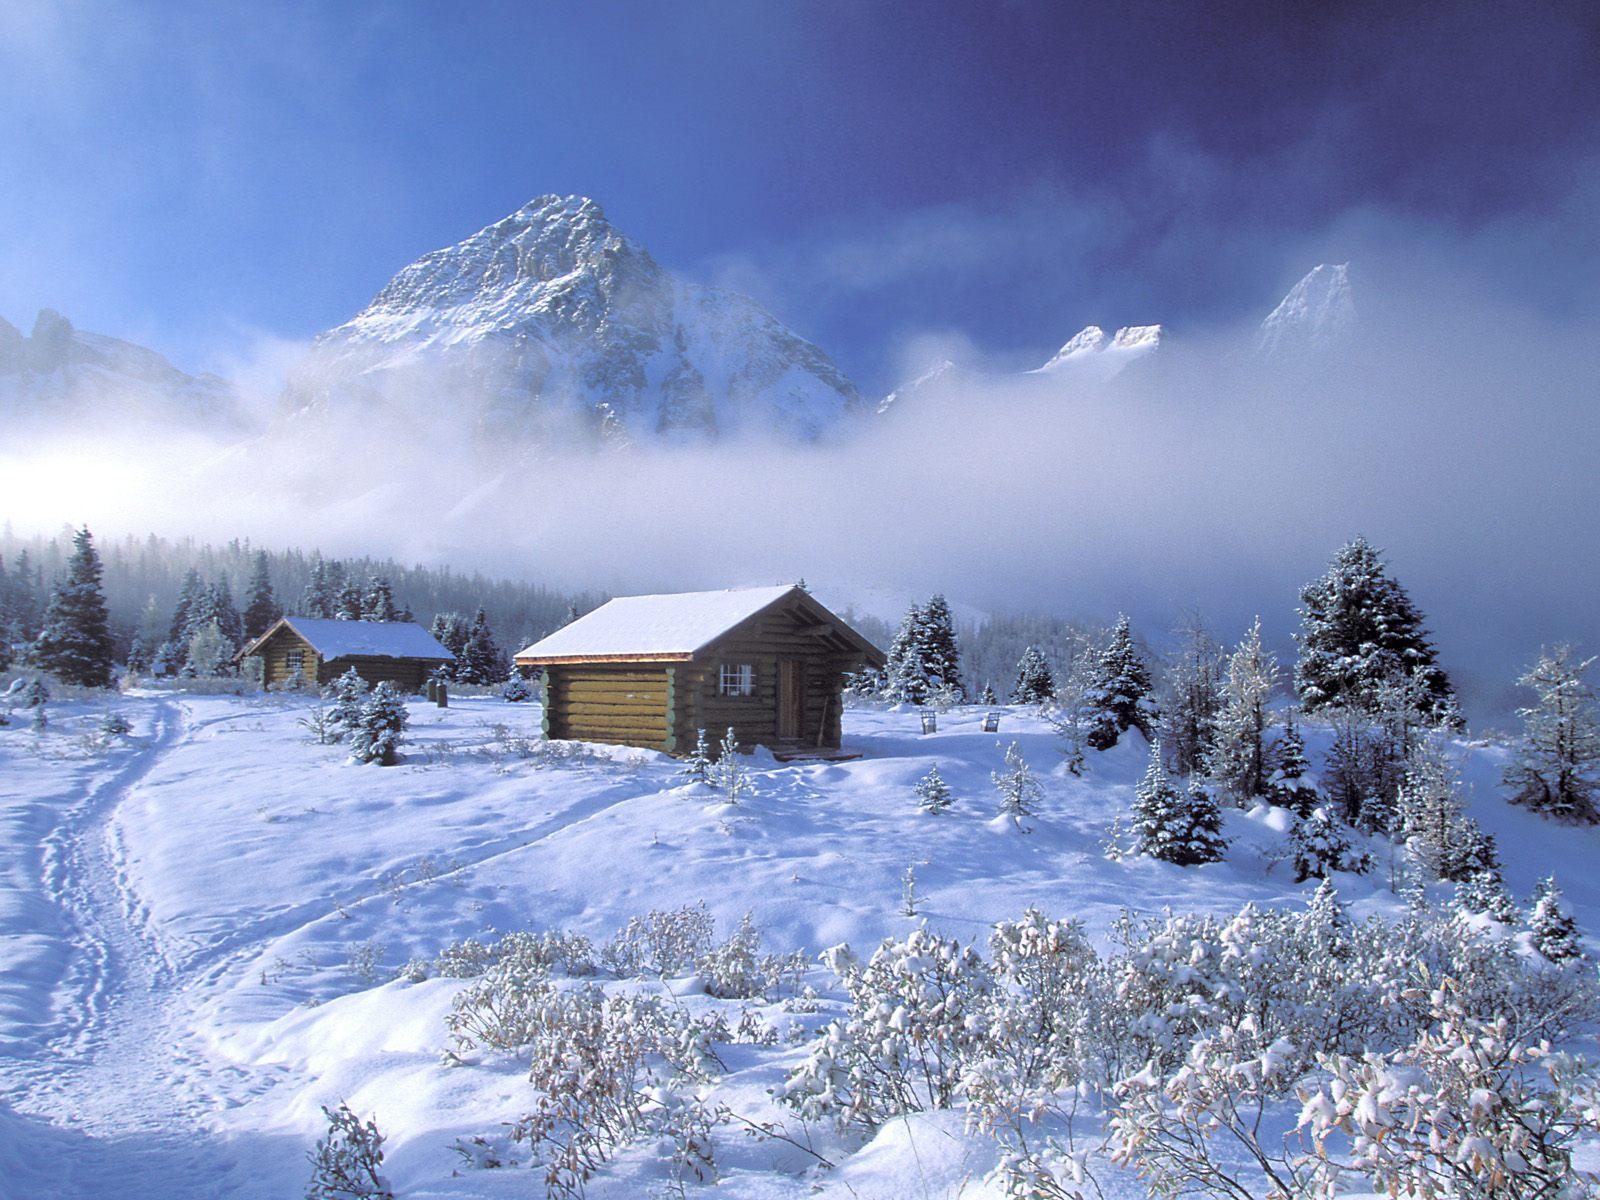 Free Desktop Wallpapers Winter Scenes - Wallpaper Cave